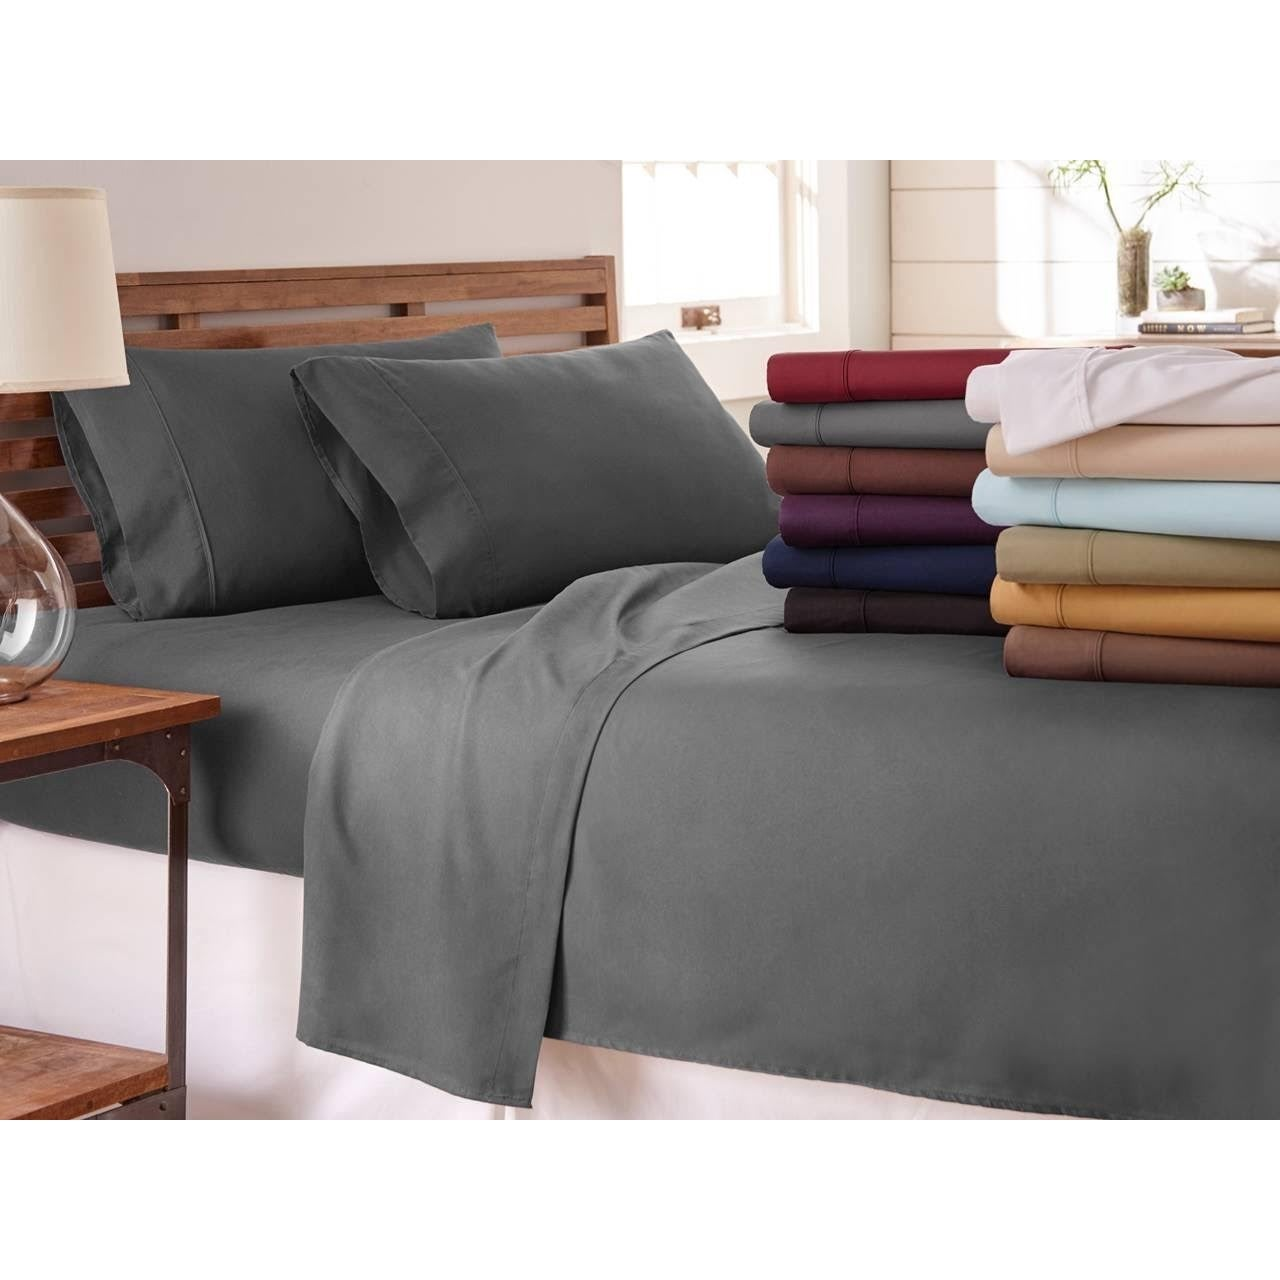 Shop Soft Essentials Ultra Soft 4 Piece Bed Sheet Set   On Sale   Free  Shipping On Orders Over $45   Overstock.com   10528039